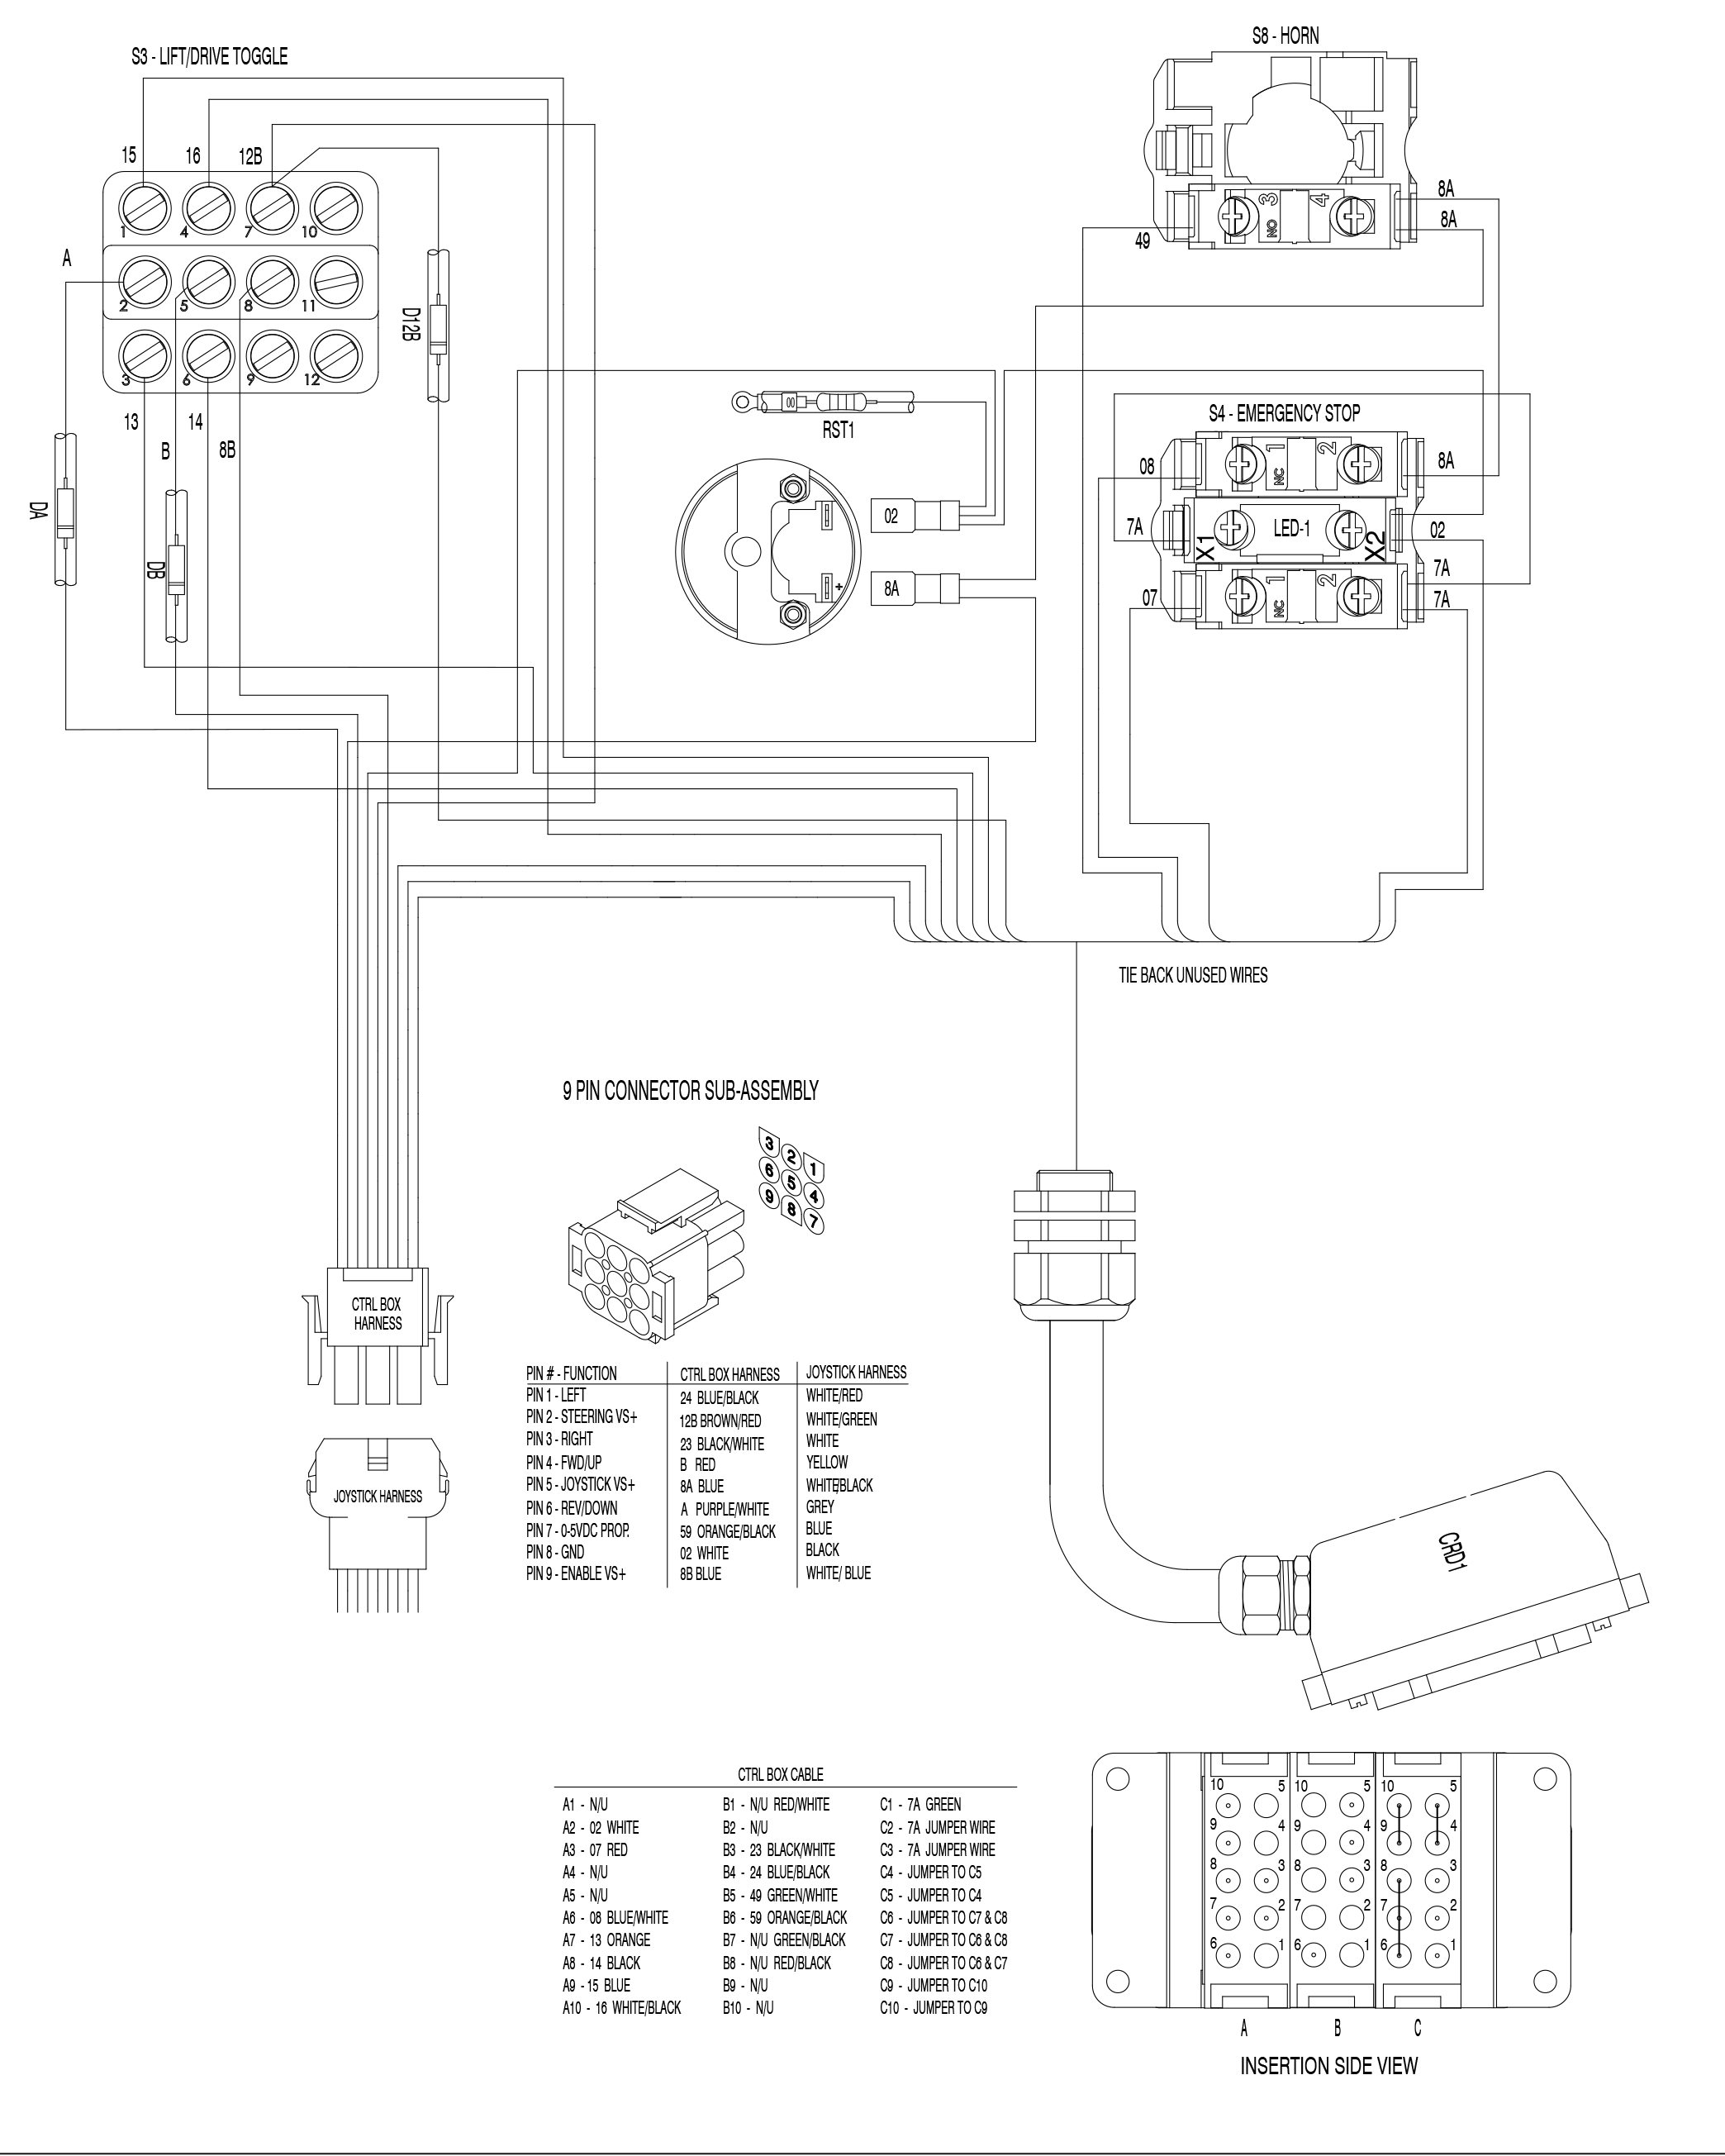 Electrical Symbols Drawing At Free For Personal Taco Wiring Diagram Chart 2088x2609 Component Schematic Symbol Photo Images